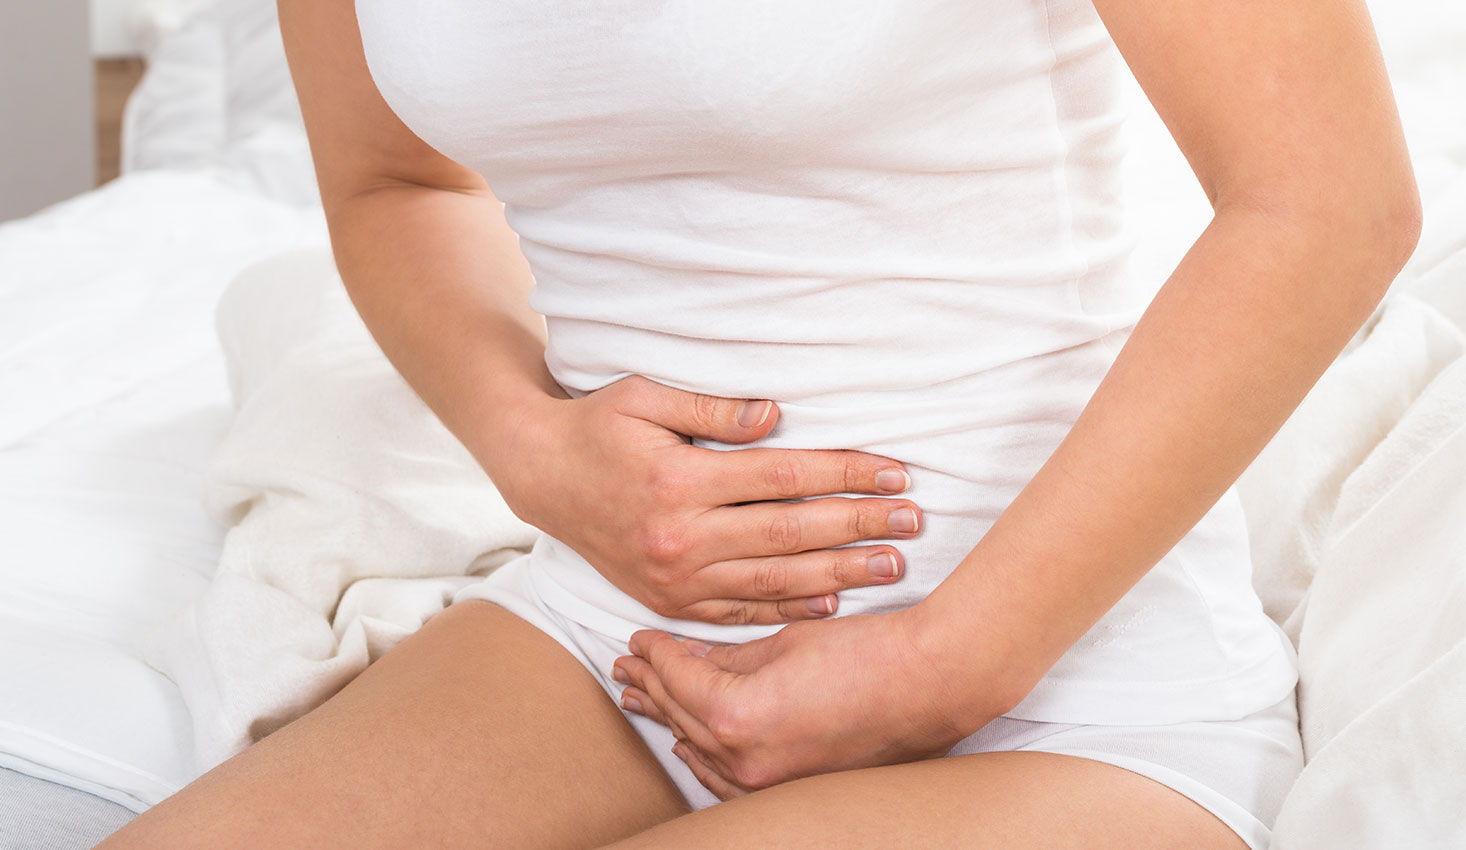 Stomach Pains Miami, FL | Dr. Sidiq Aldabbagh, MD - OBGYN